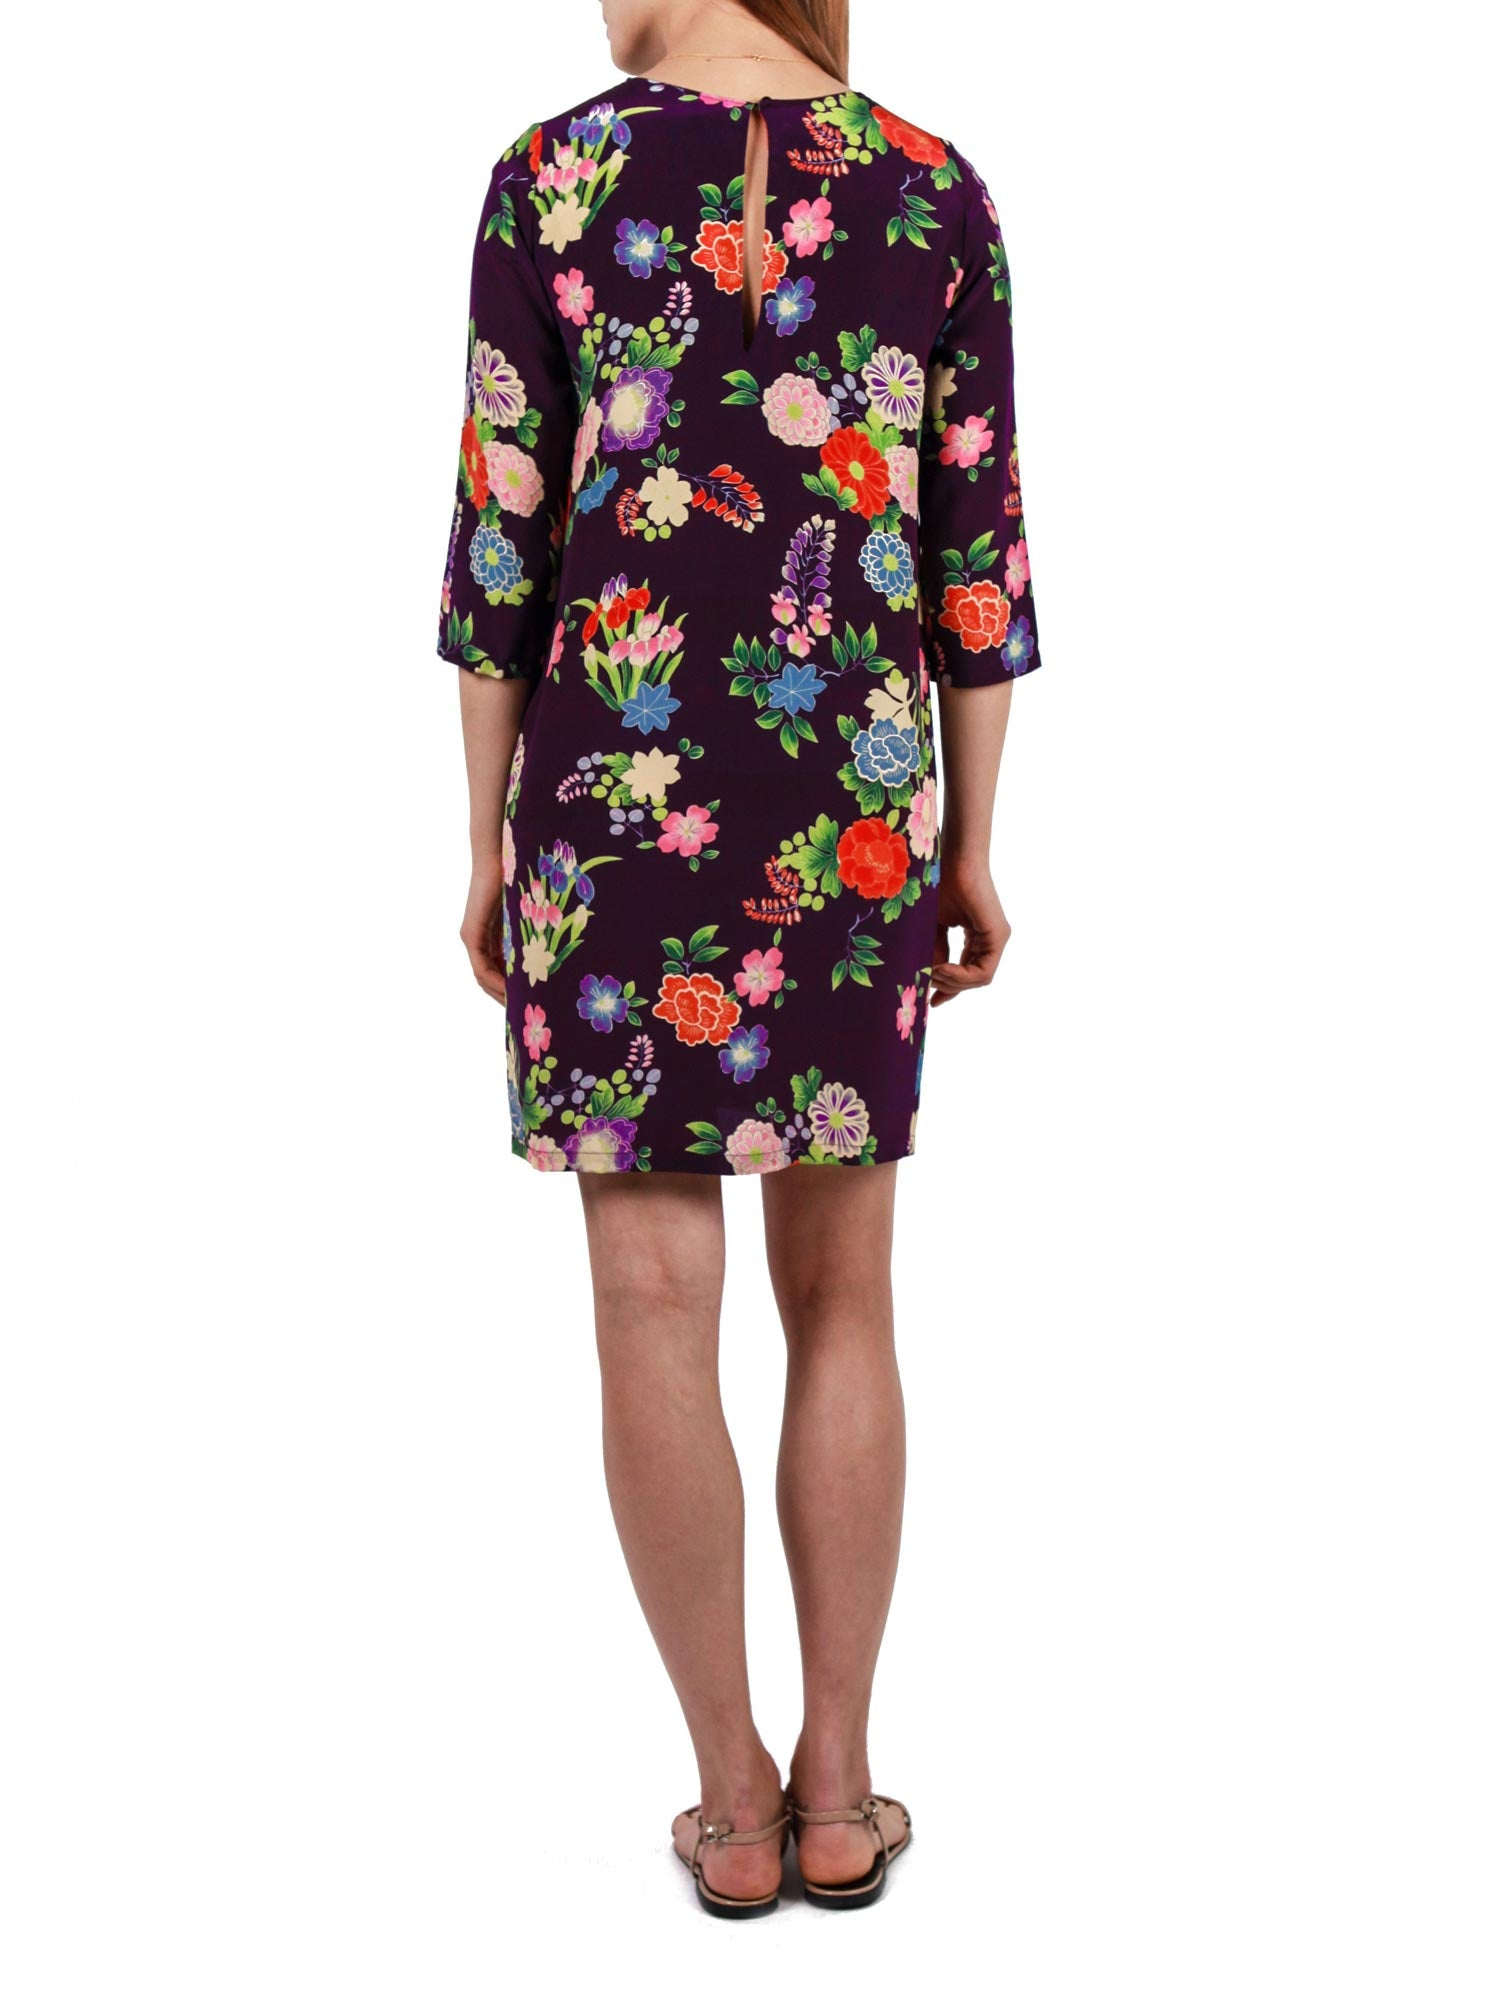 Giesha Print dress | Silk Crepe de Chine